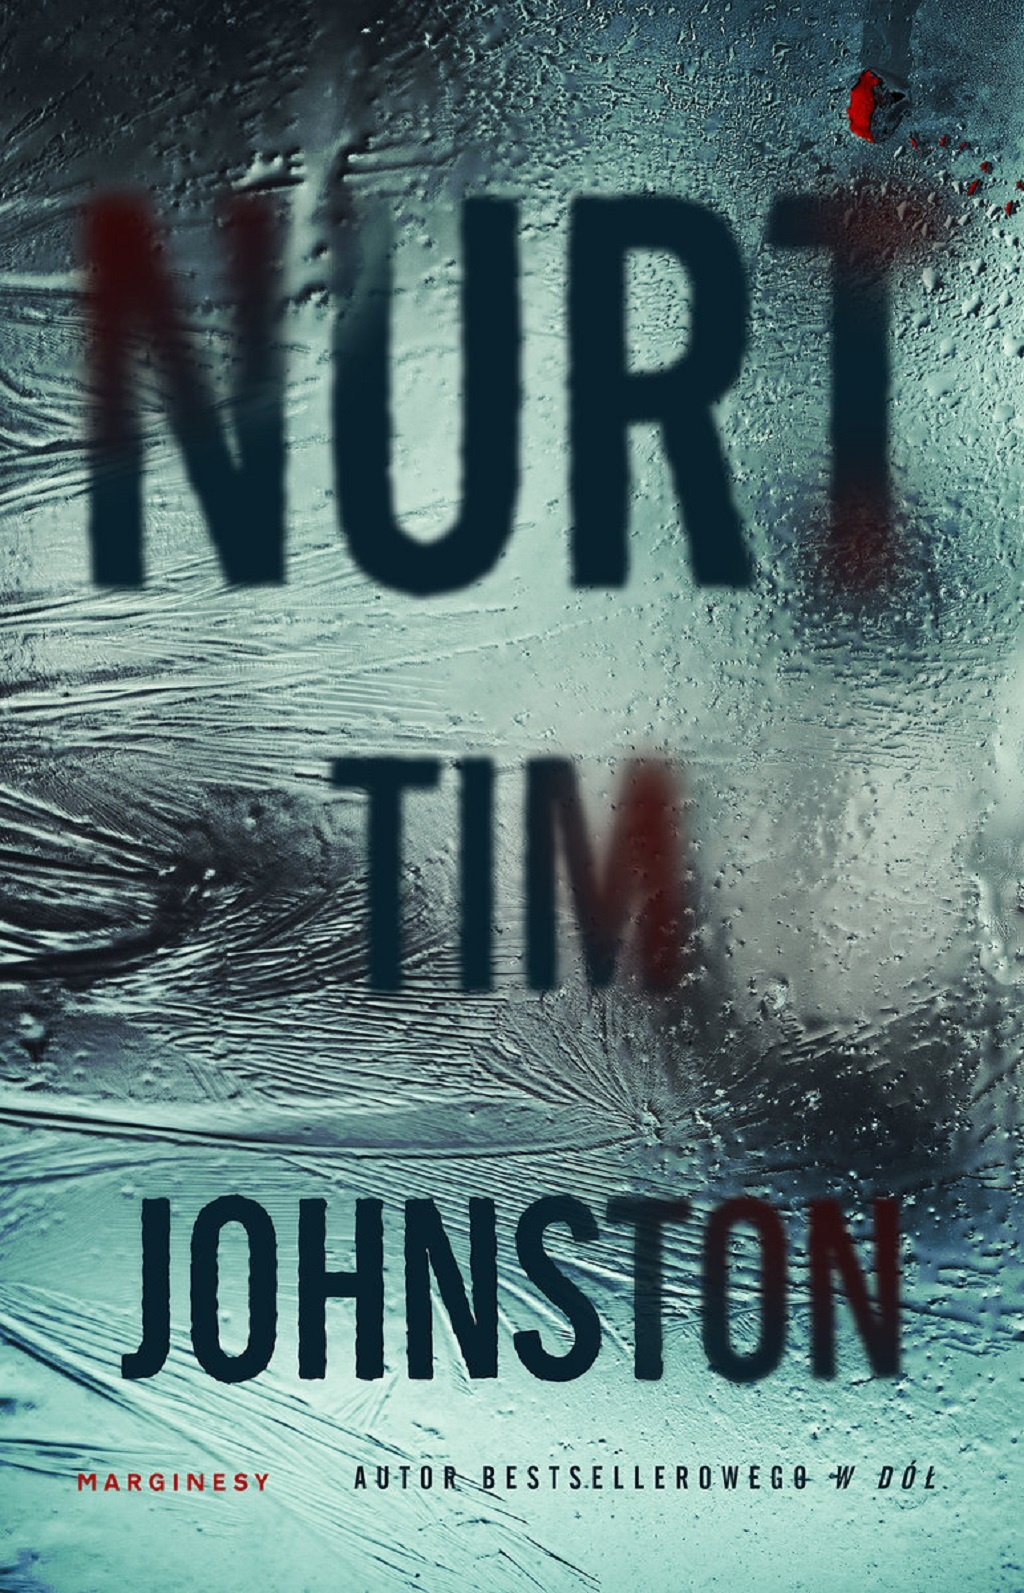 Tim Johnston – Nurt